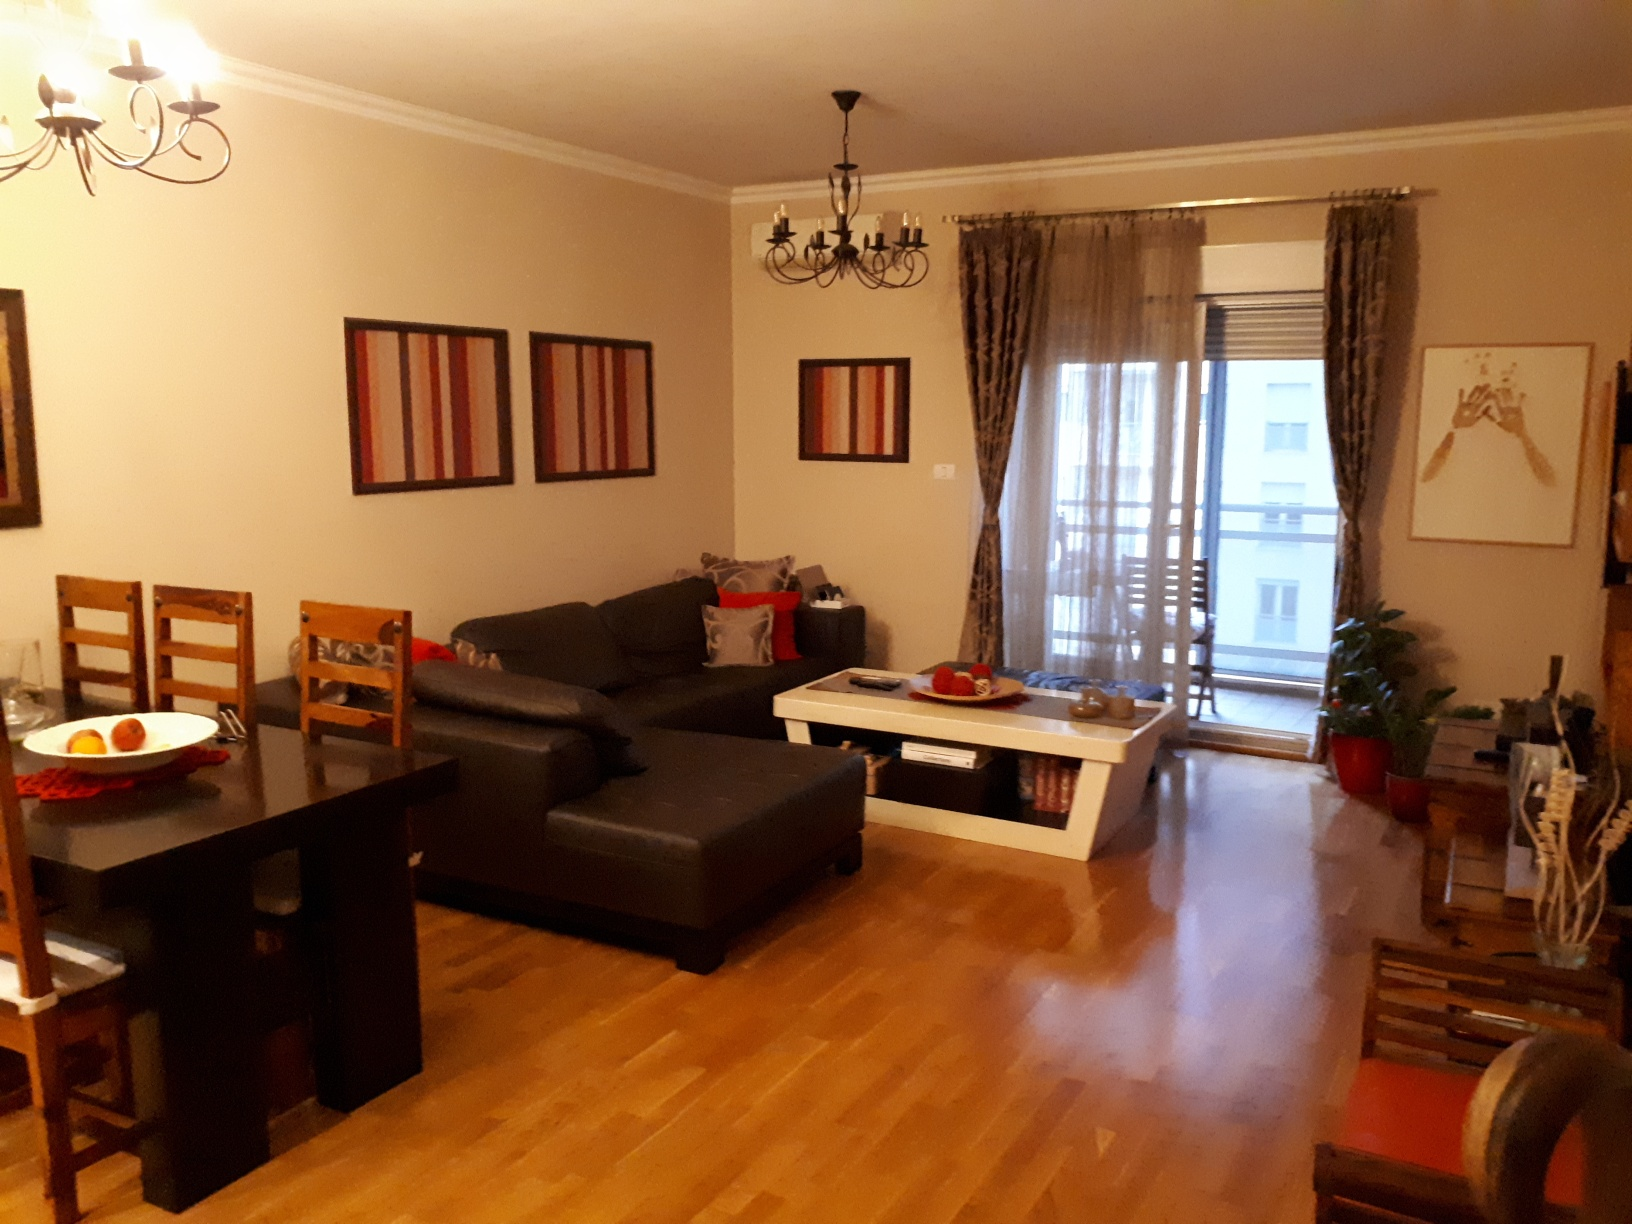 Flat for sale 112m2 – three bedrooms – garage – furnished – City quart